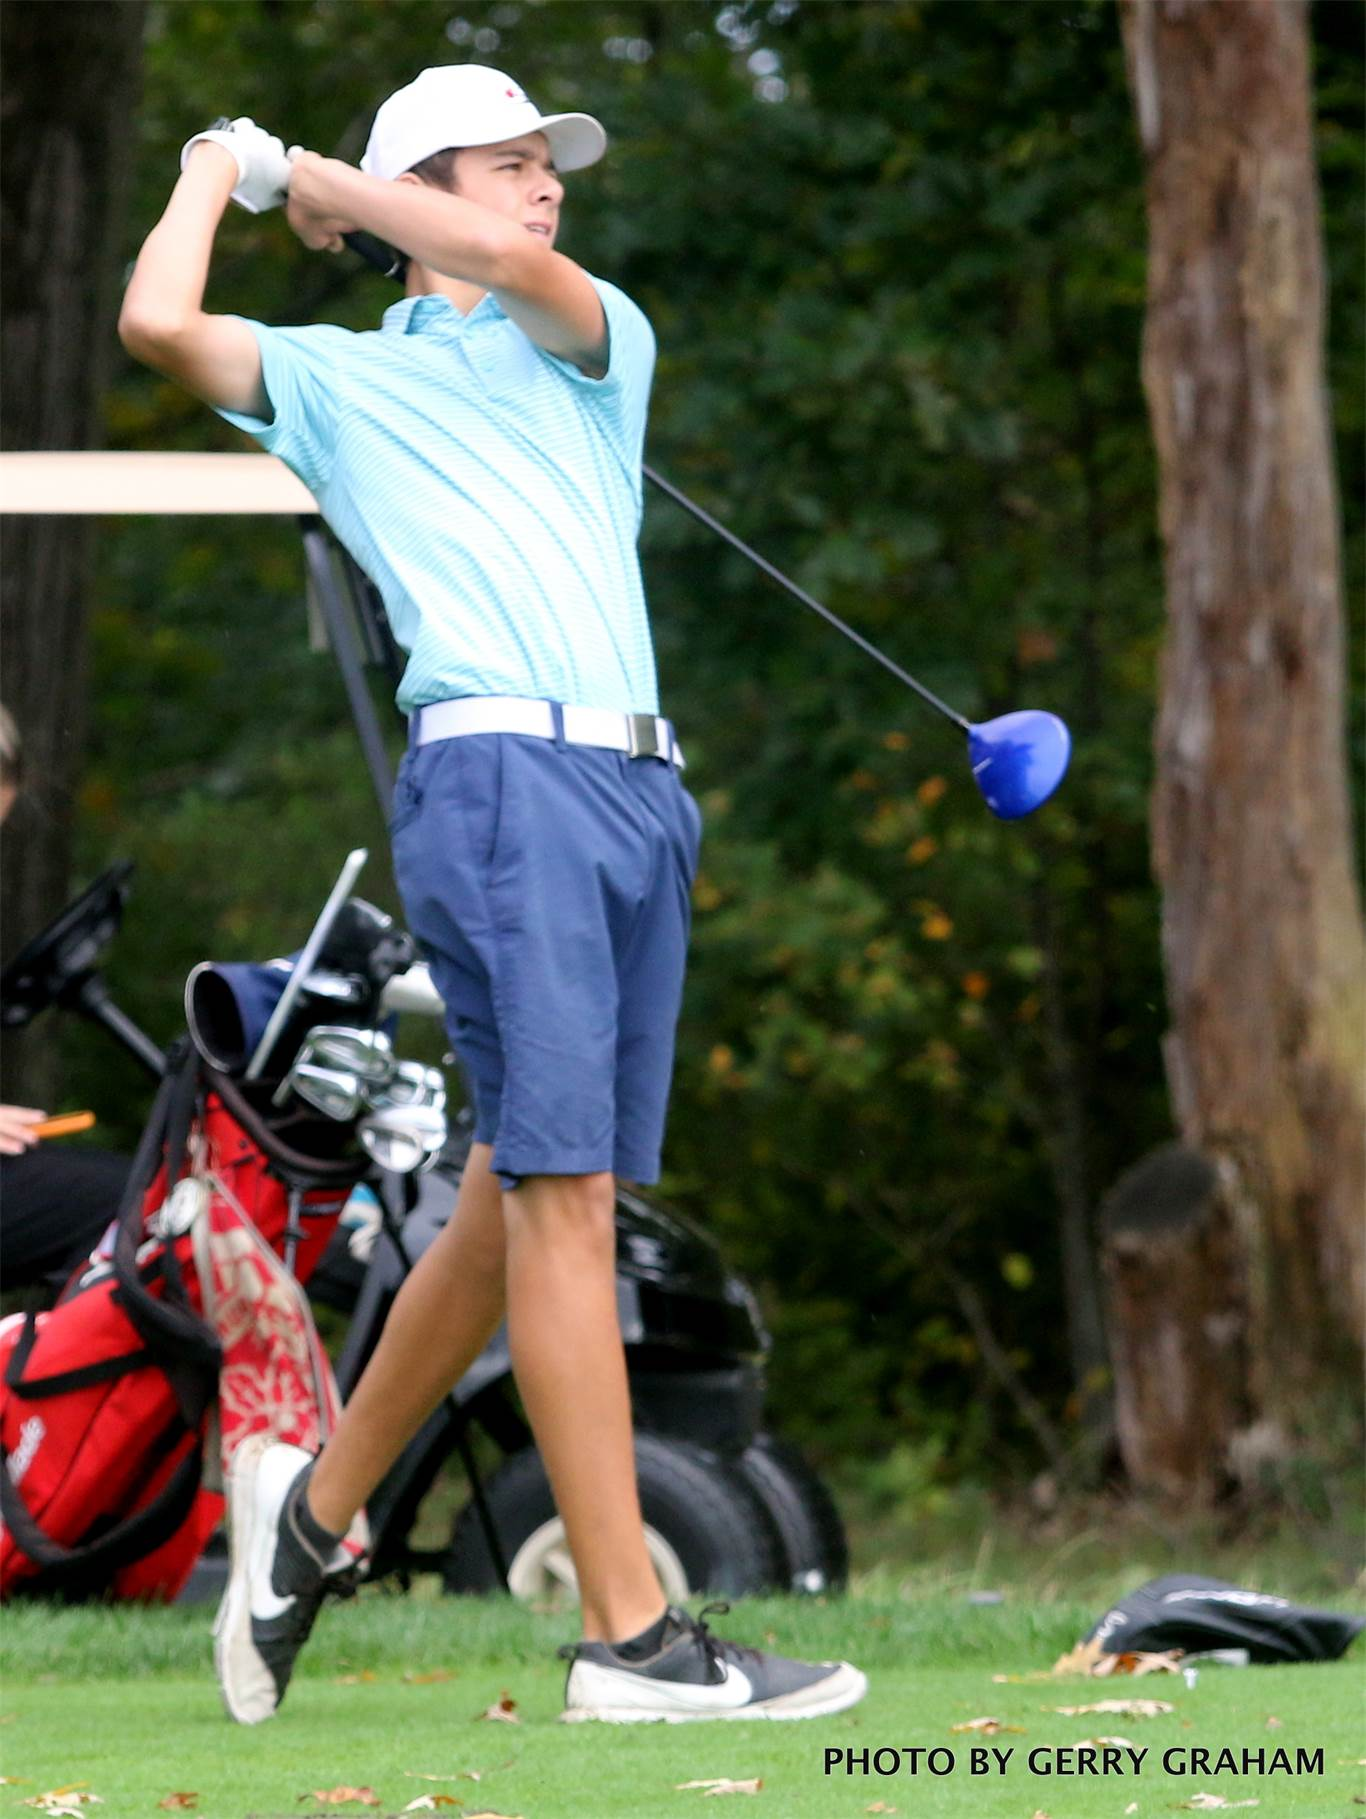 Alex Duarte is part of the foursome from Bishop Tonnos heading to the OFSAA boys' golf championship in Whitby. Photo by Gerry Graham.